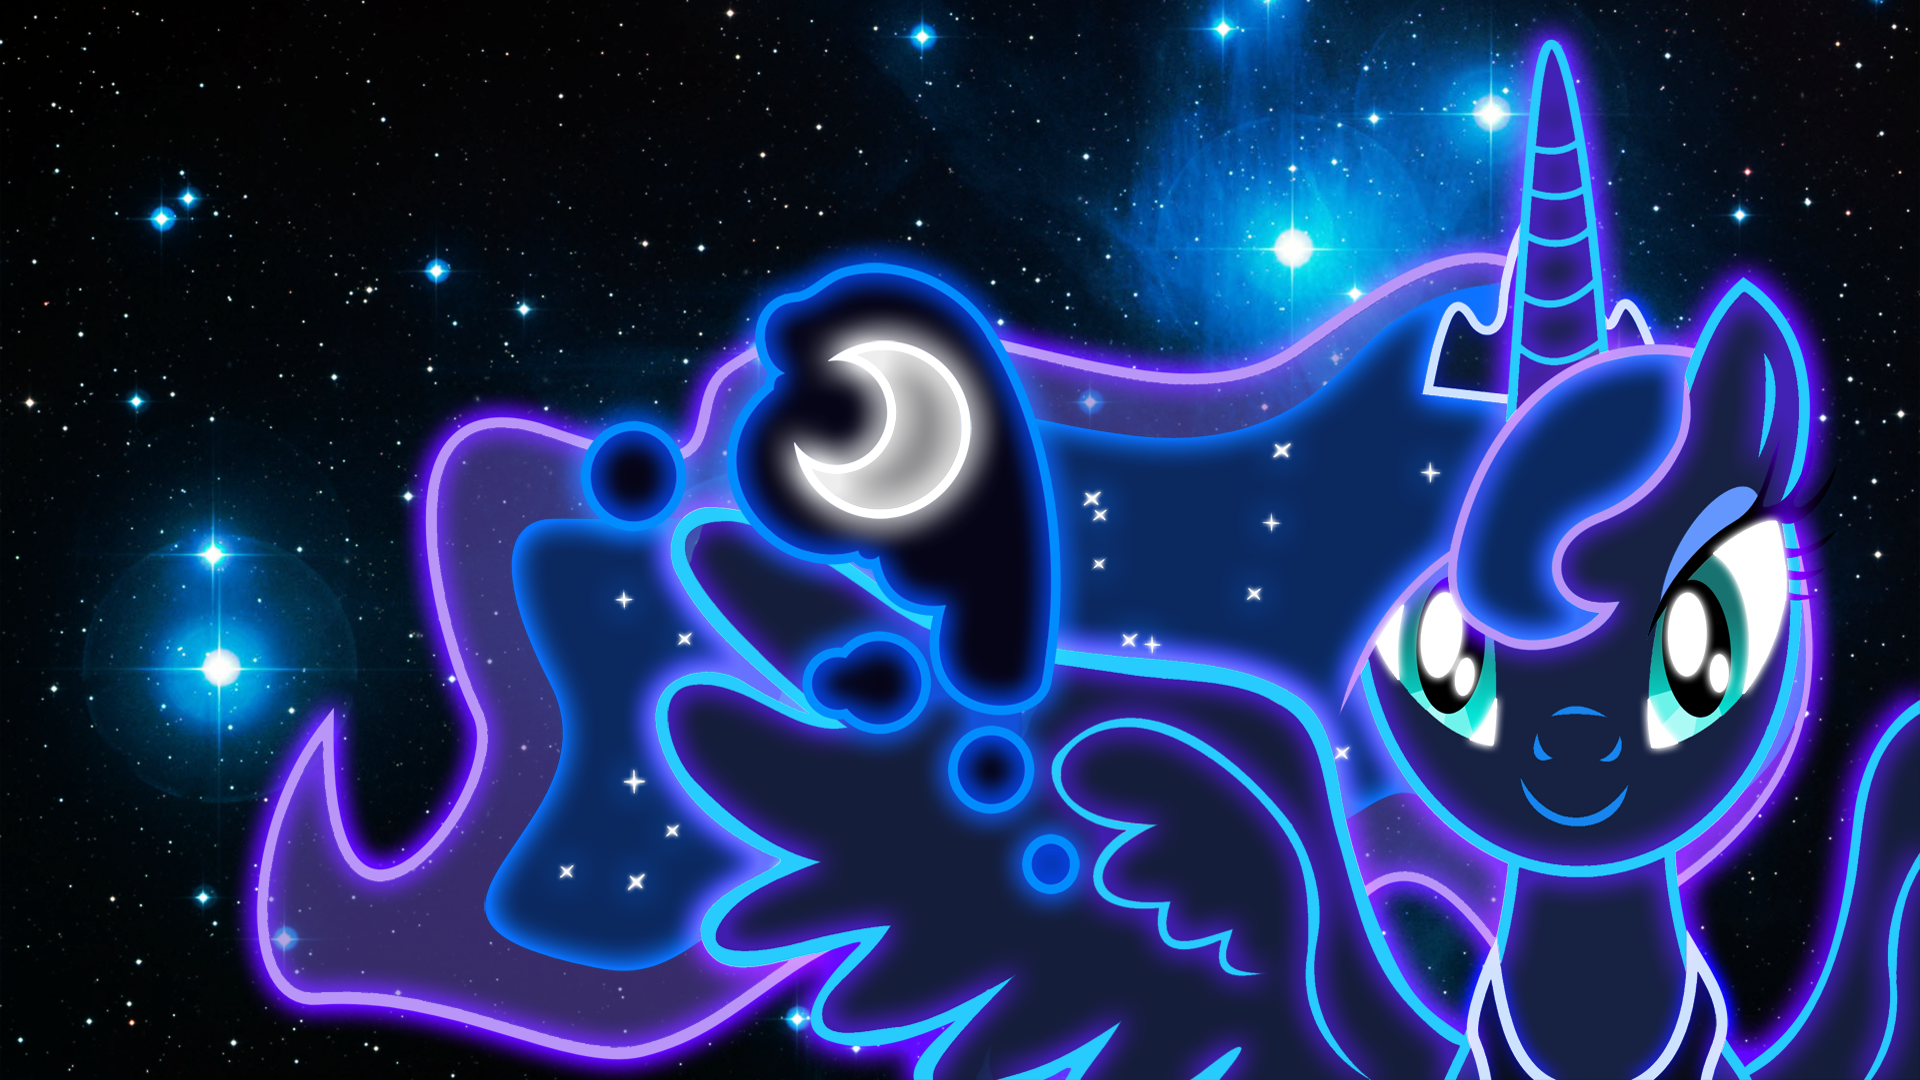 Luna Wallpaper by Alfonzo Spina PC.29-IEJ